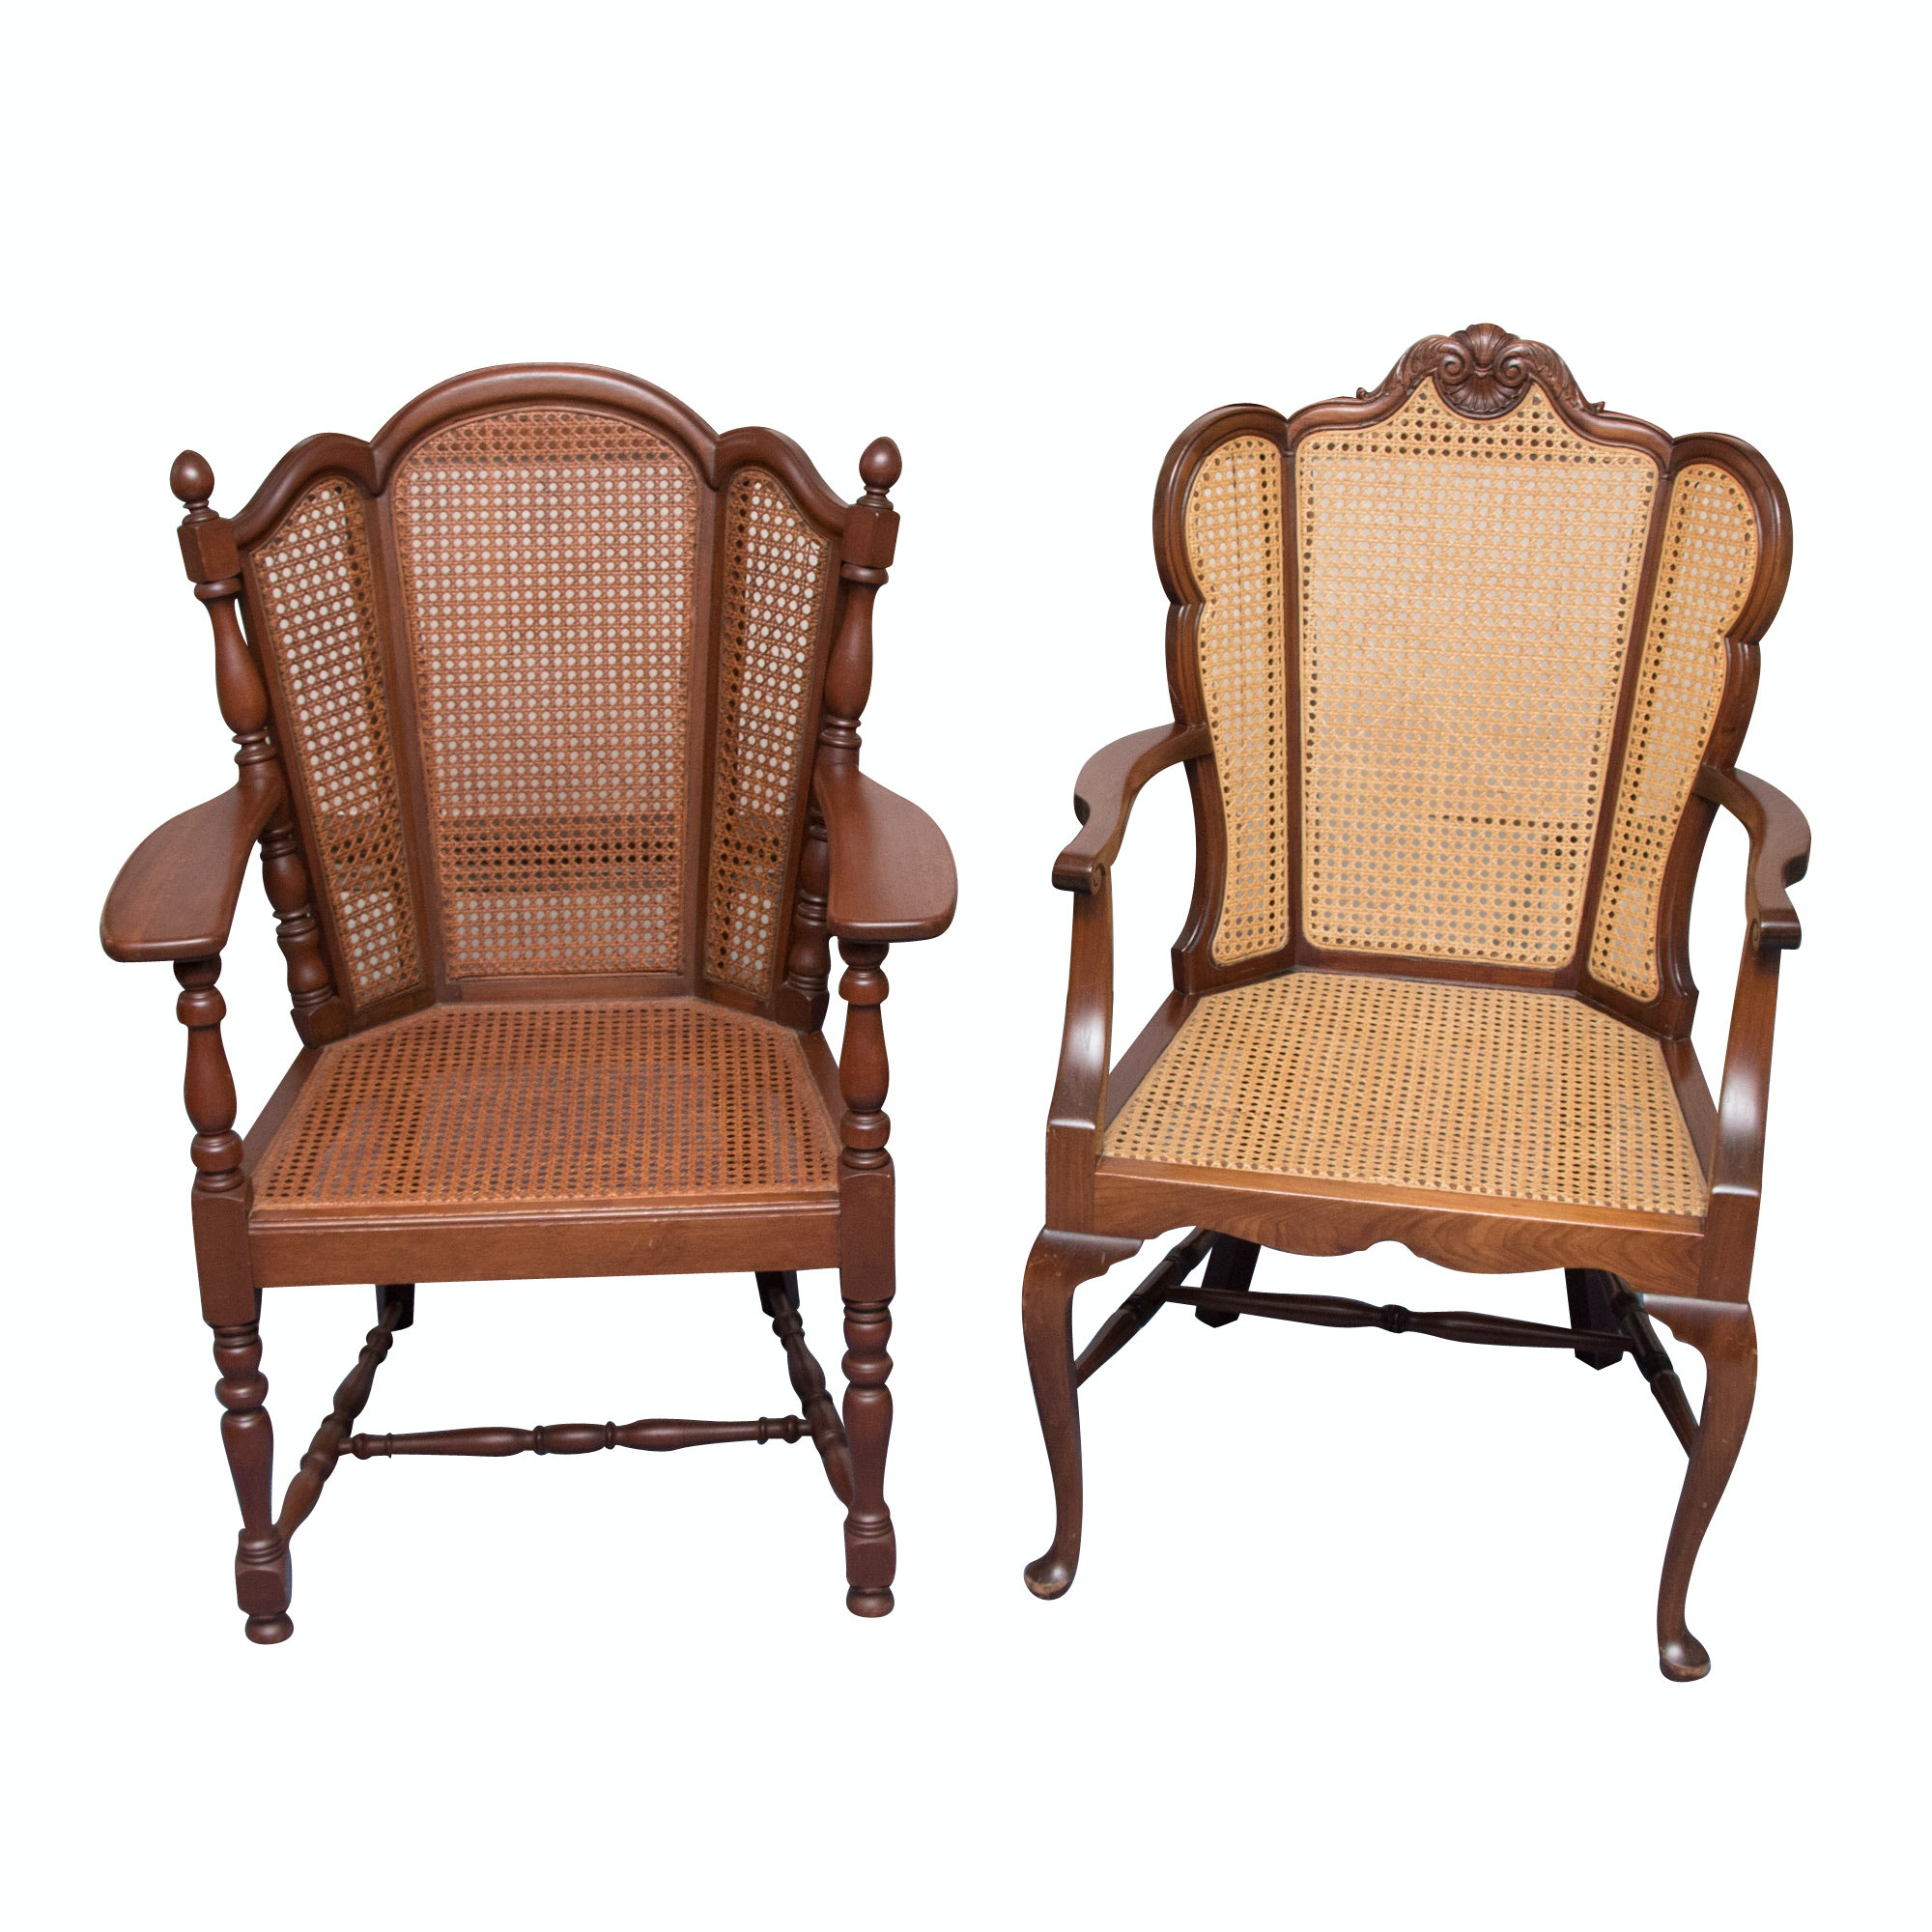 Vintage Walnut And Cane Chairs ...